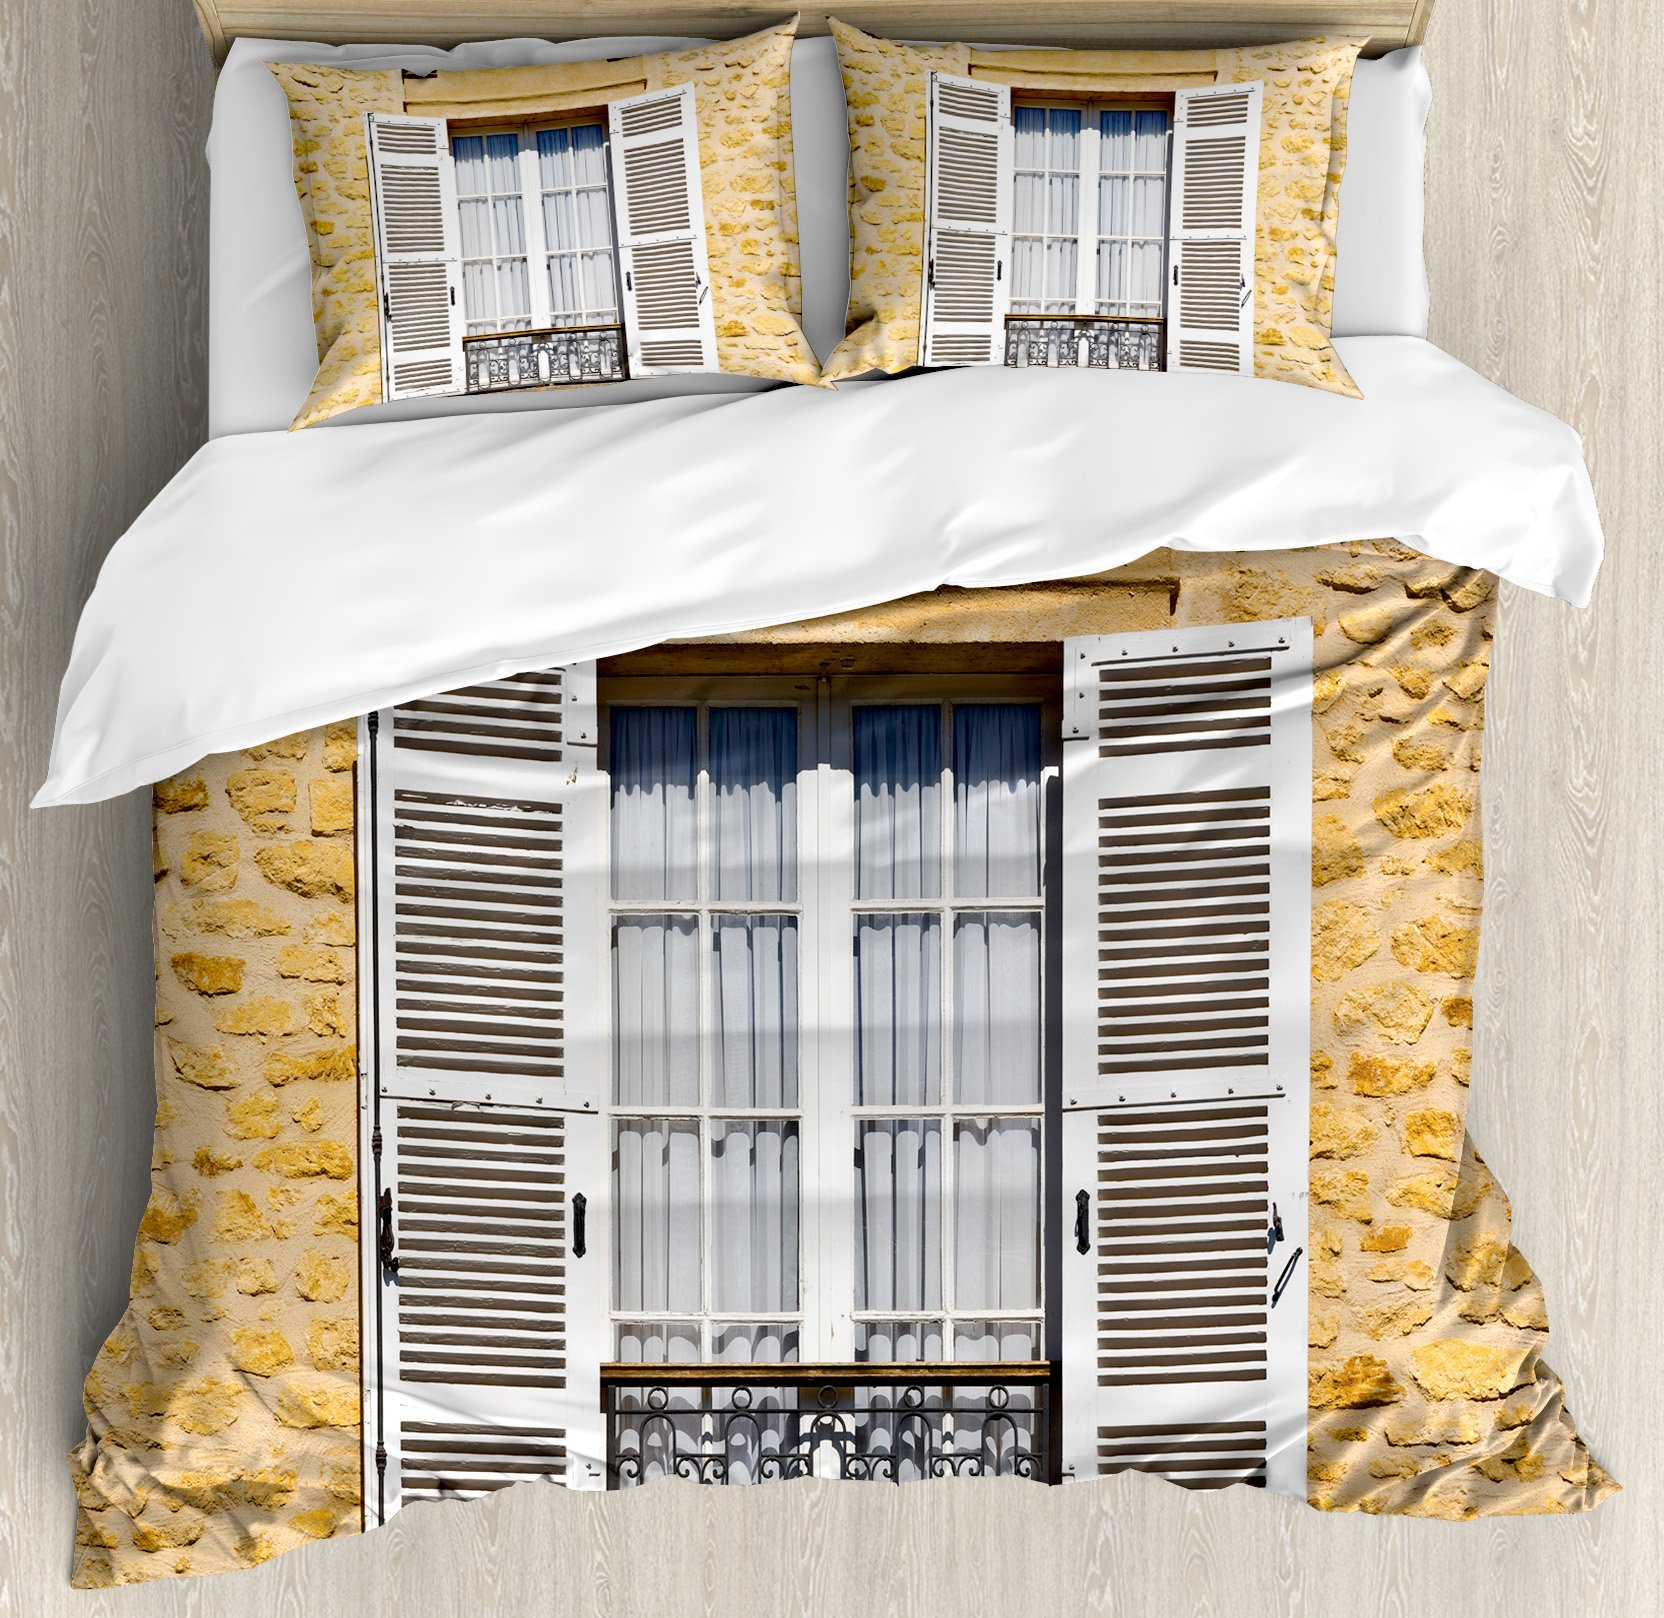 Country Duvet Cover Set Queen Size by Ambesonne, Traditional French Style Window Shutters in Bohemian European Style Antique Print, Decorative 3 Piece Bedding Set with 2 Pillow Shams, Ecru White